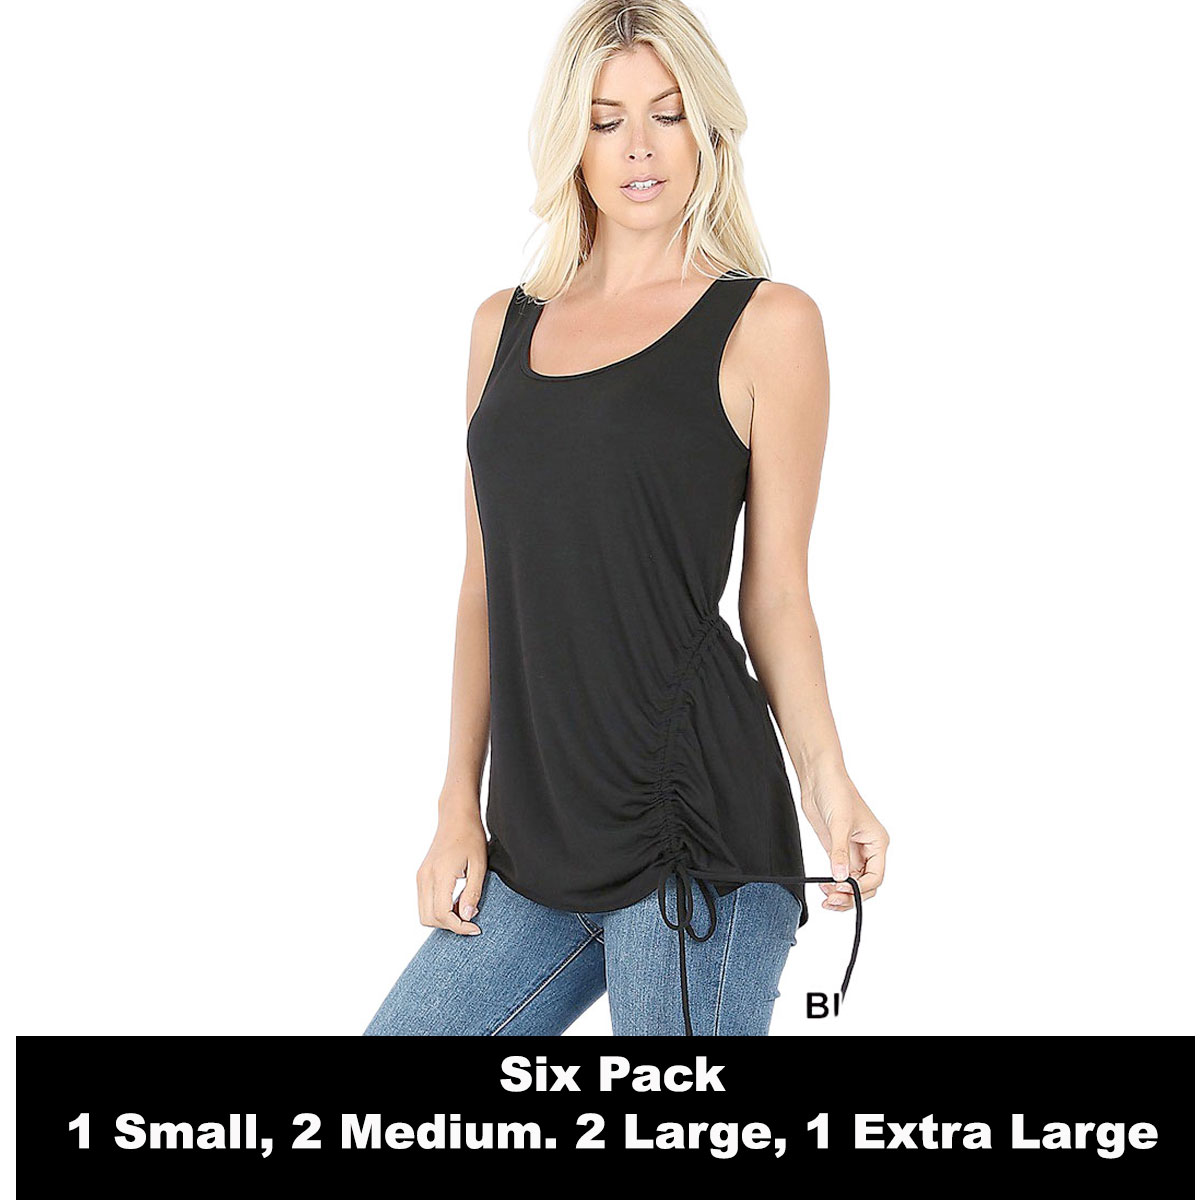 Tops - Sleeveless Round Neck Side Ruched 1877 -  BLACK SIX PACK Top - Sleeveless Round Neck Side Ruched 1877 (1S/2M/2L/1XL)